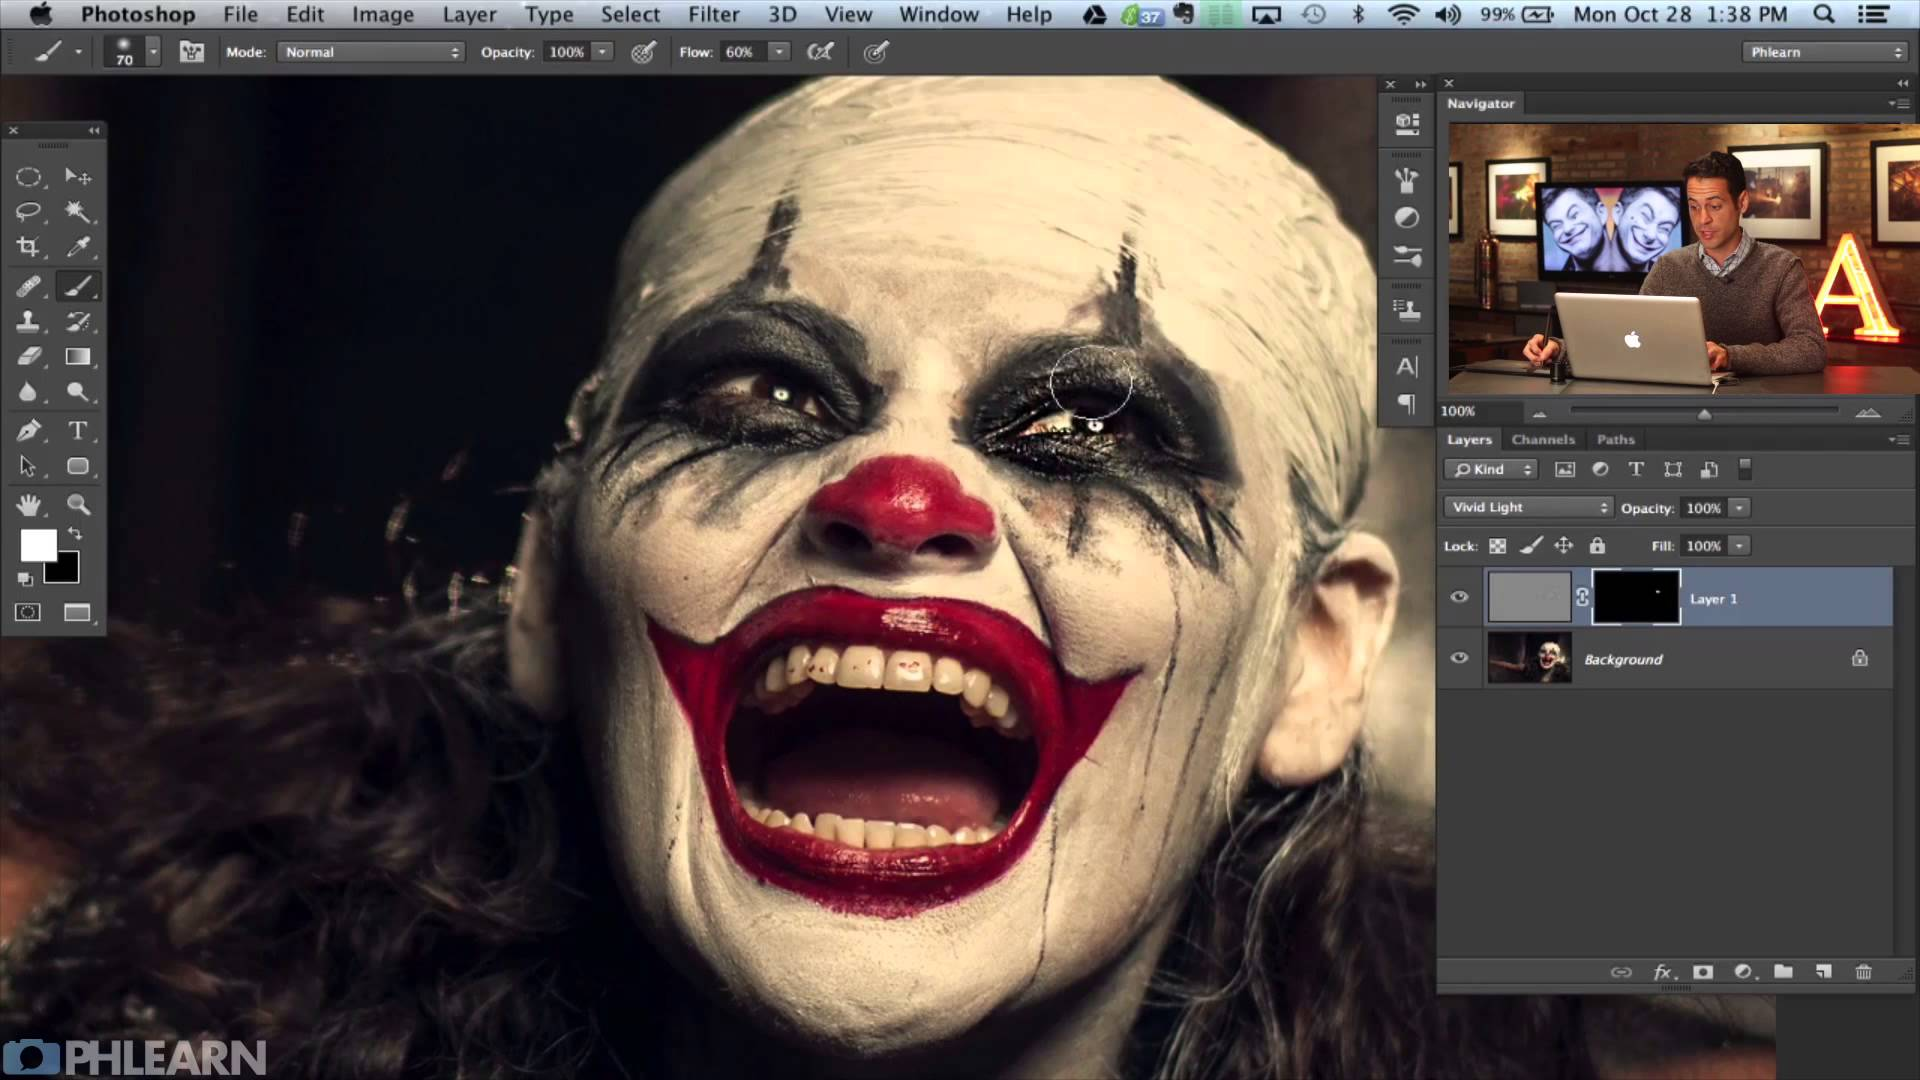 How to Add Depth and Color to Images in Photoshop